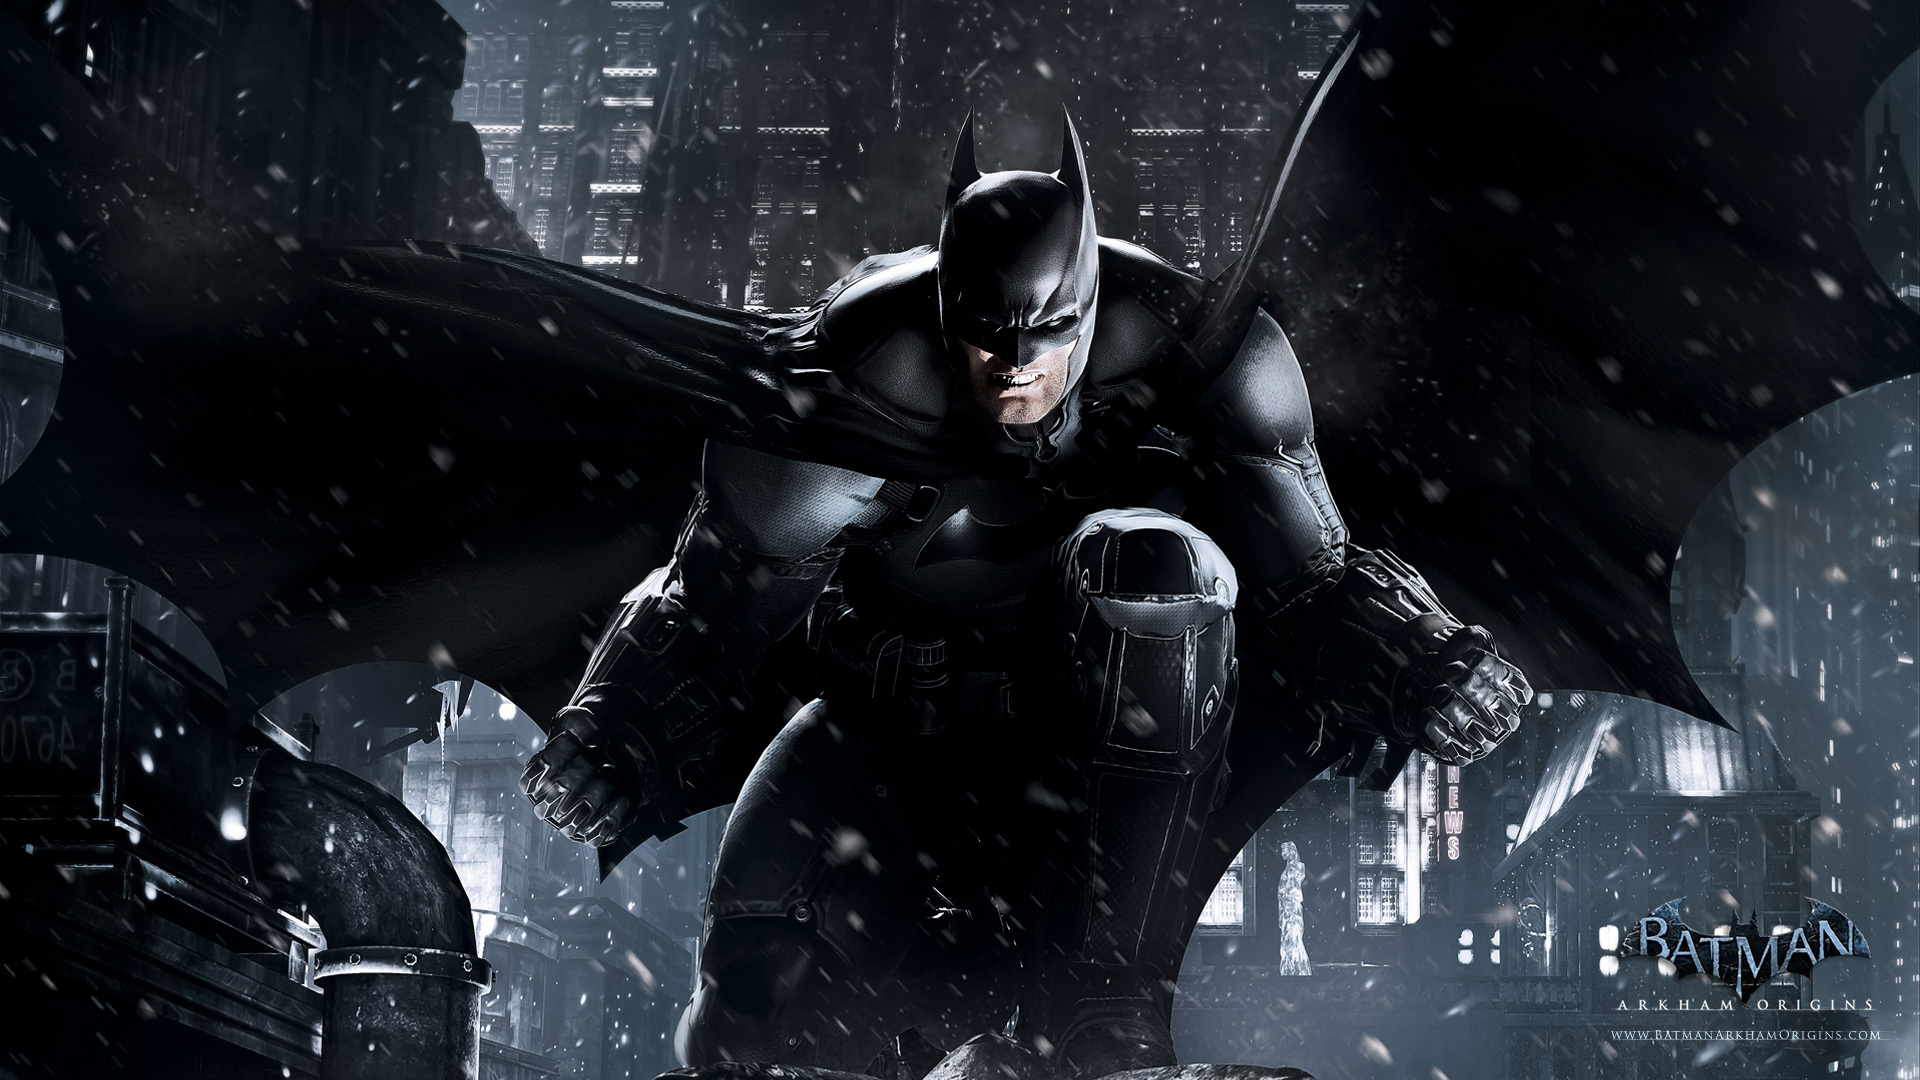 2013 Batman Arkham Origins 210.32 Kb